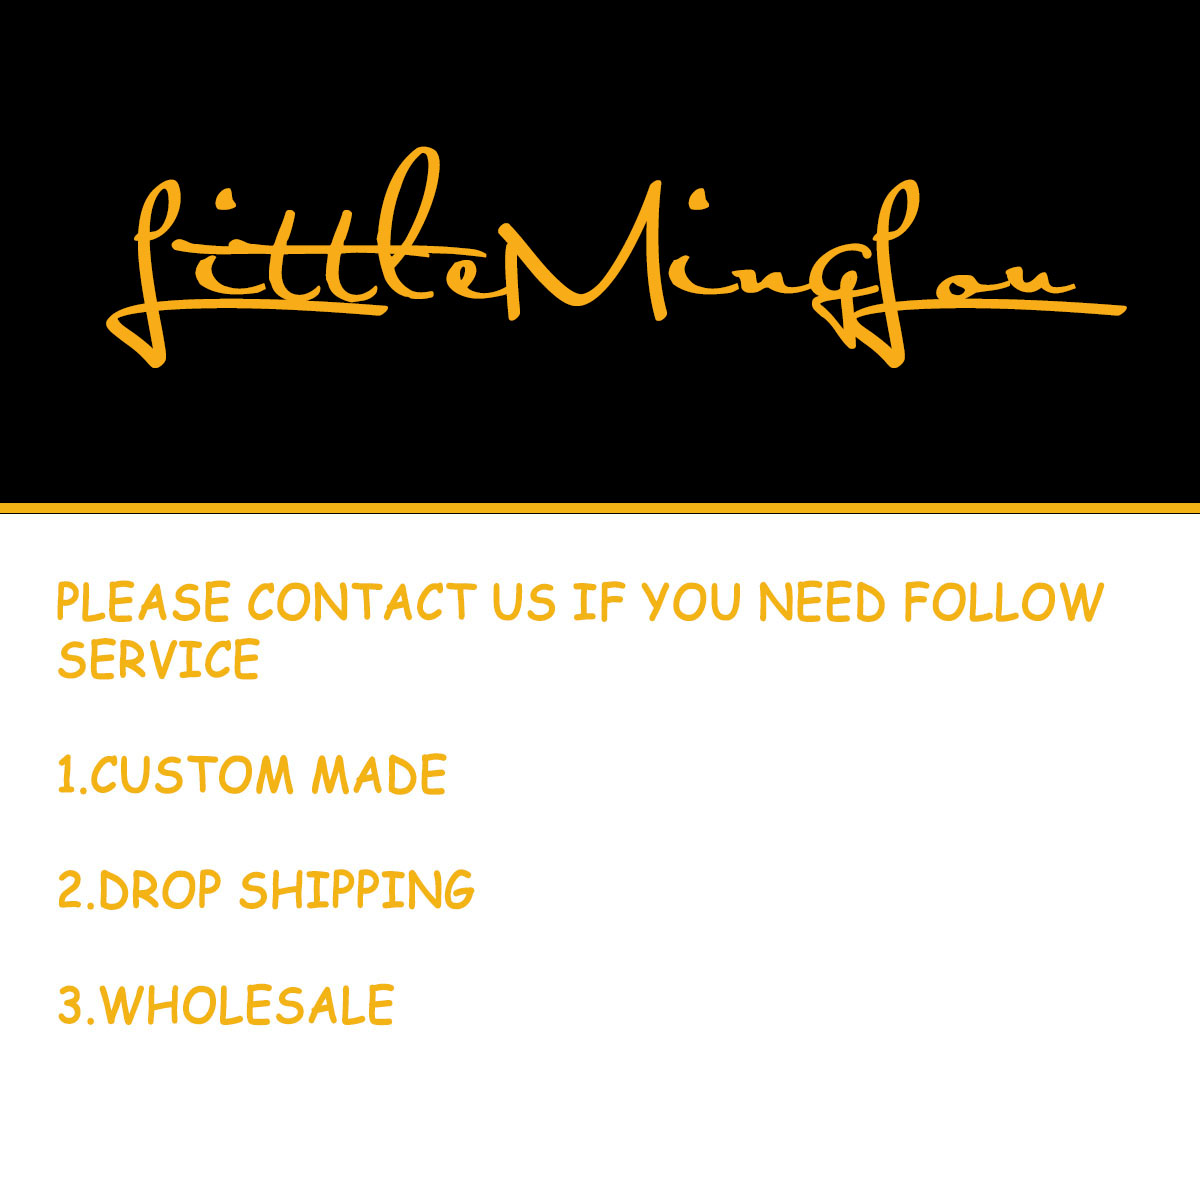 VIP bracelet LINk Don't buy without contact,otherwise won't deliver